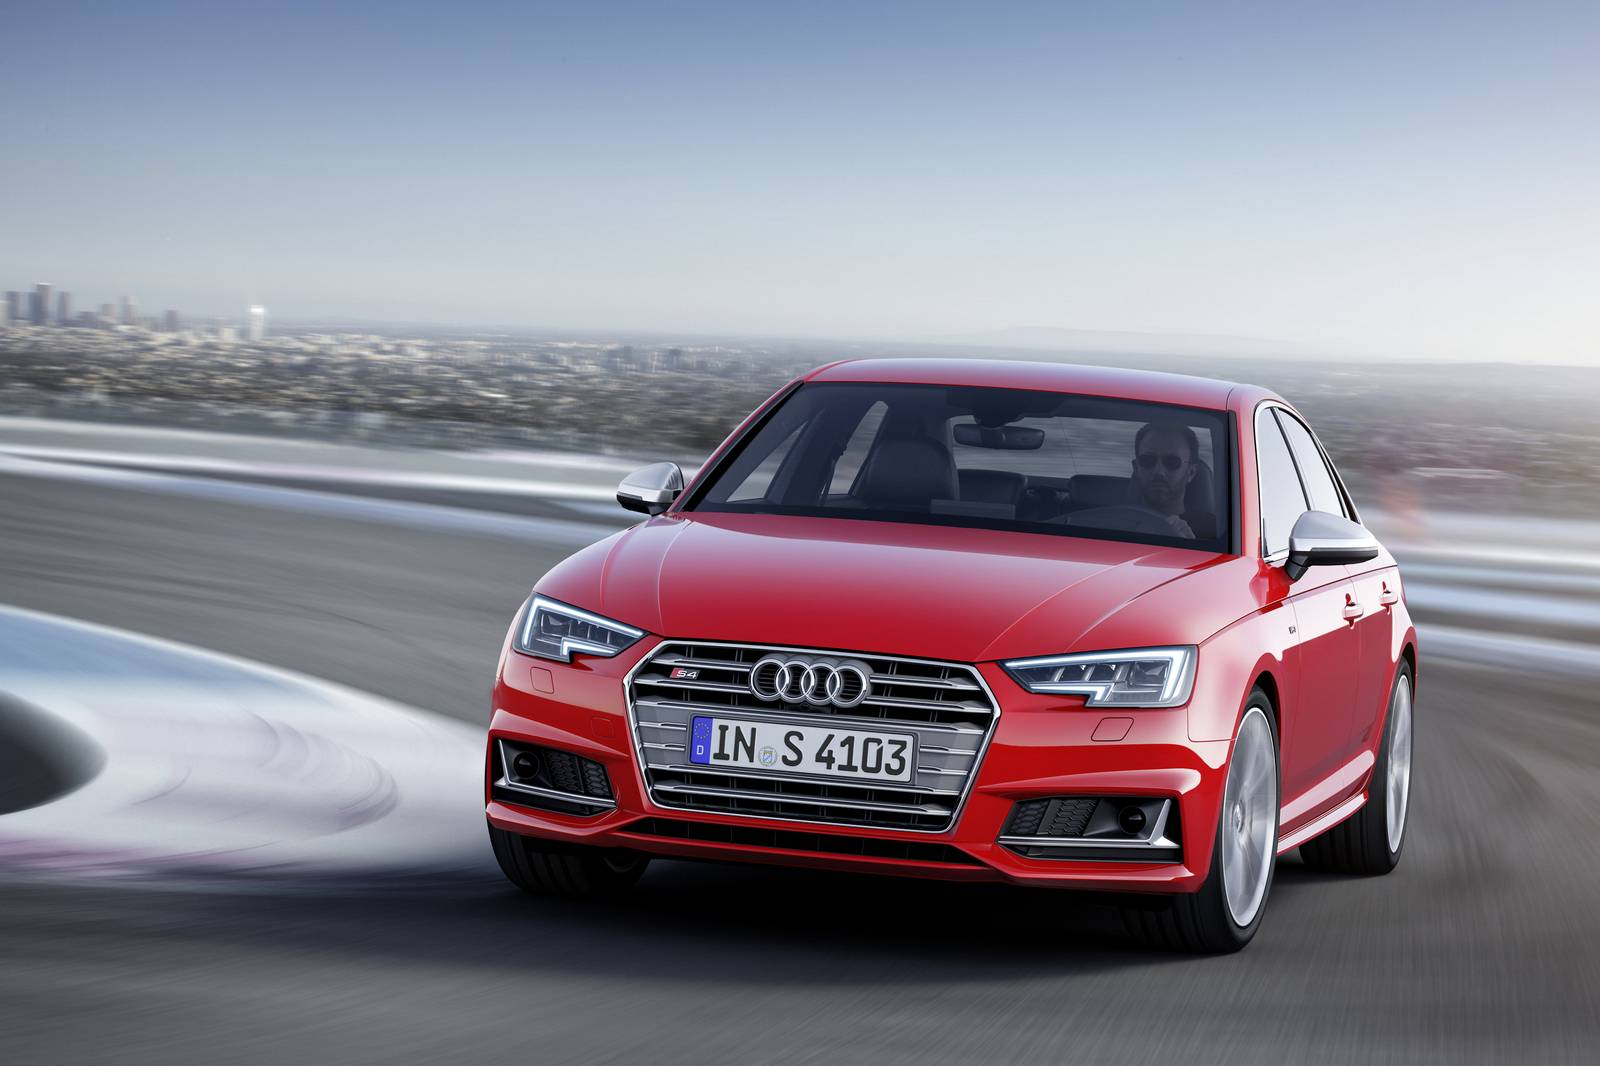 No Dsg And Supercharger 2016 Audi S4 Goes Automatic And